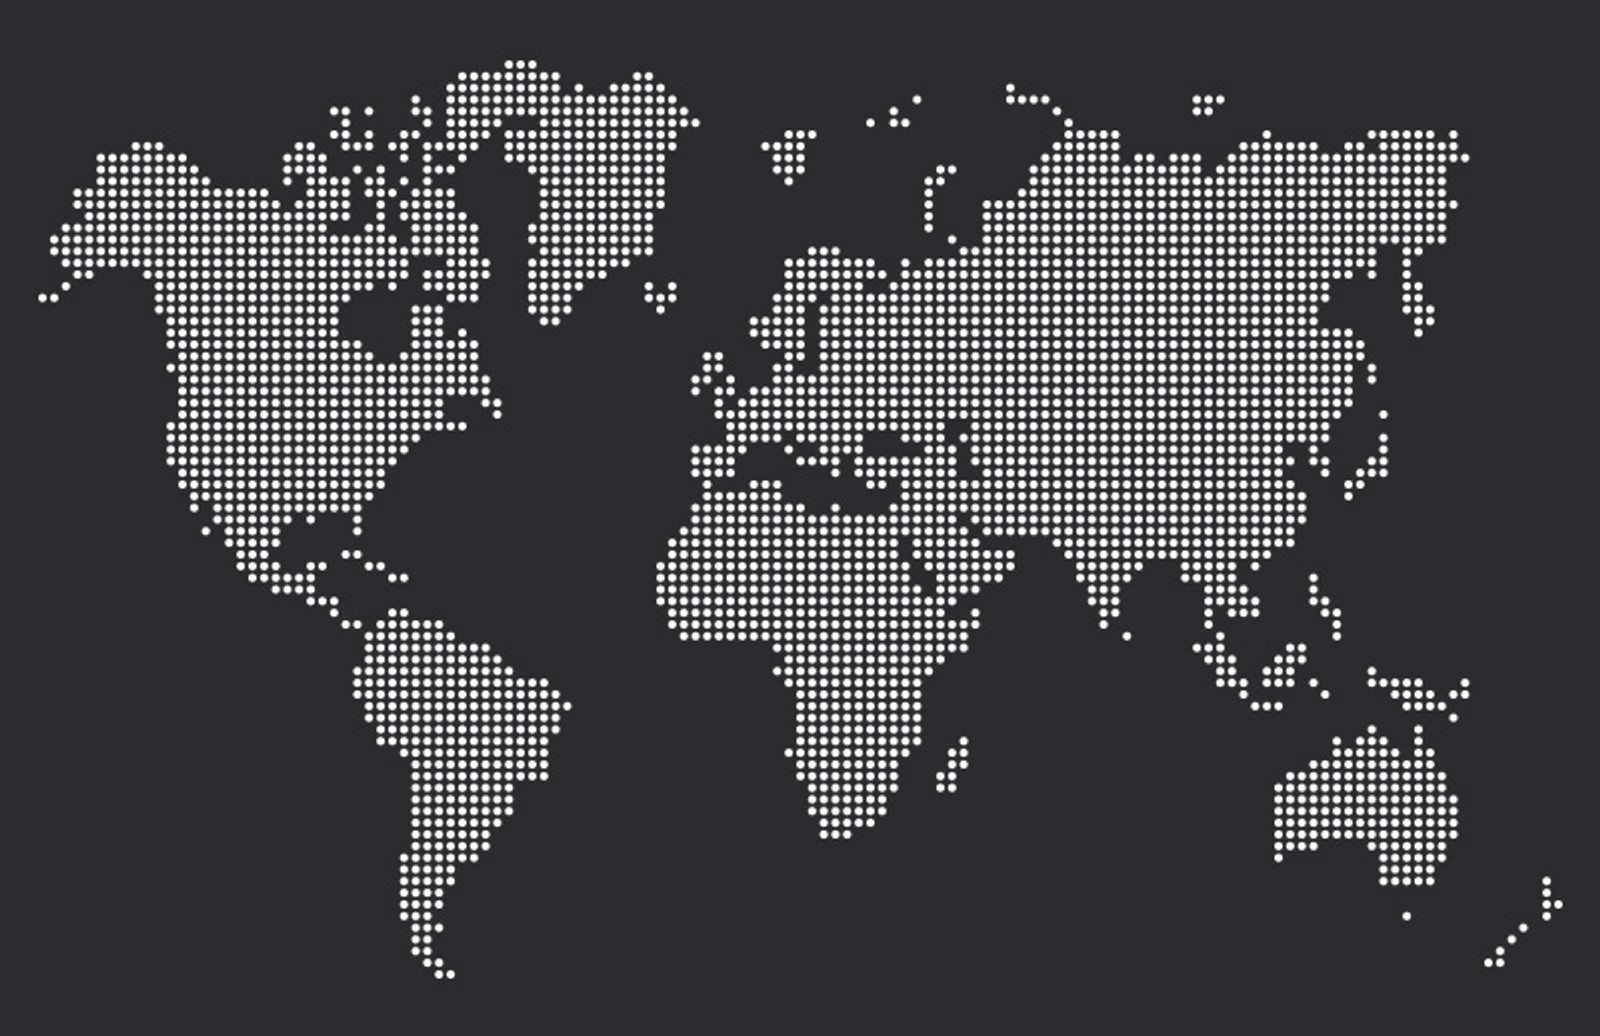 Dotted world map vectors medialoot dotted world map vectors preview 1 gumiabroncs Images